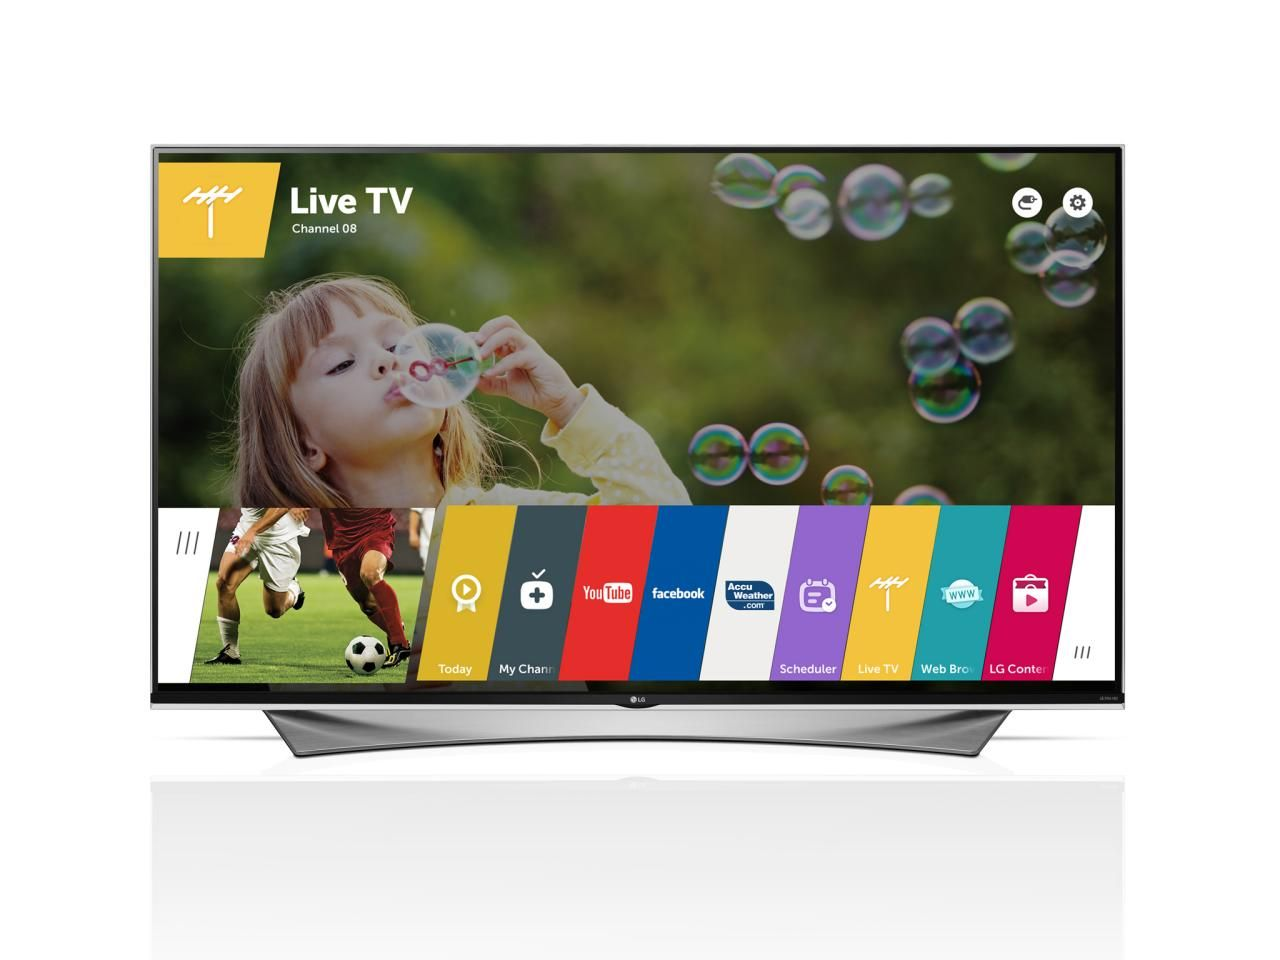 Televisions like the LG Smart TV respond to your voice, so you can